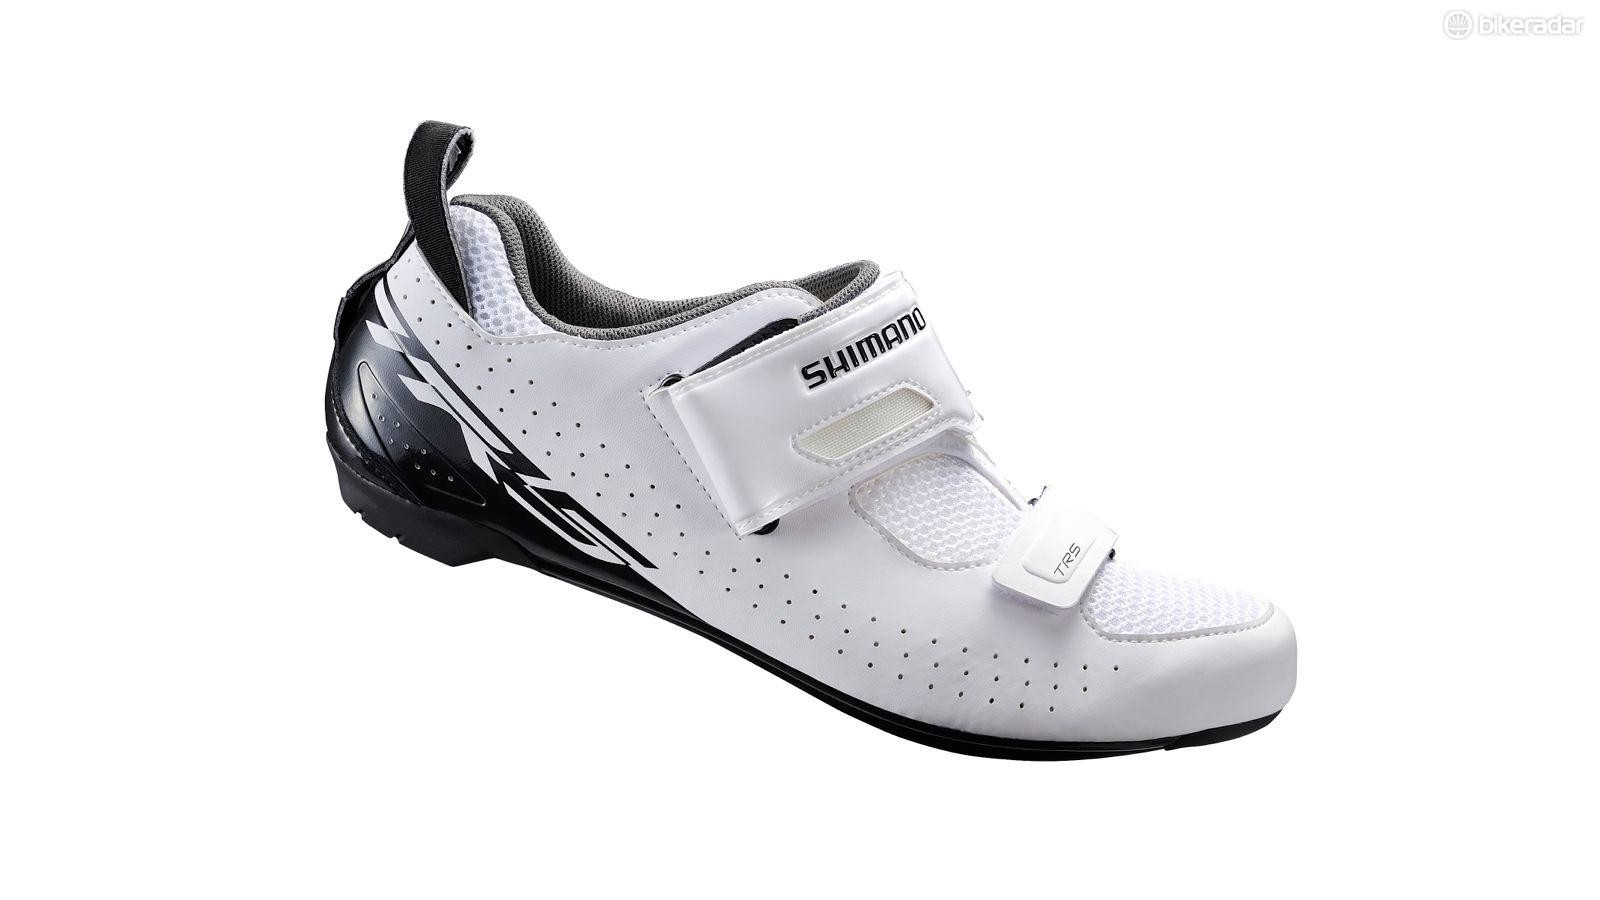 And this is the TR5 triathlon shoe